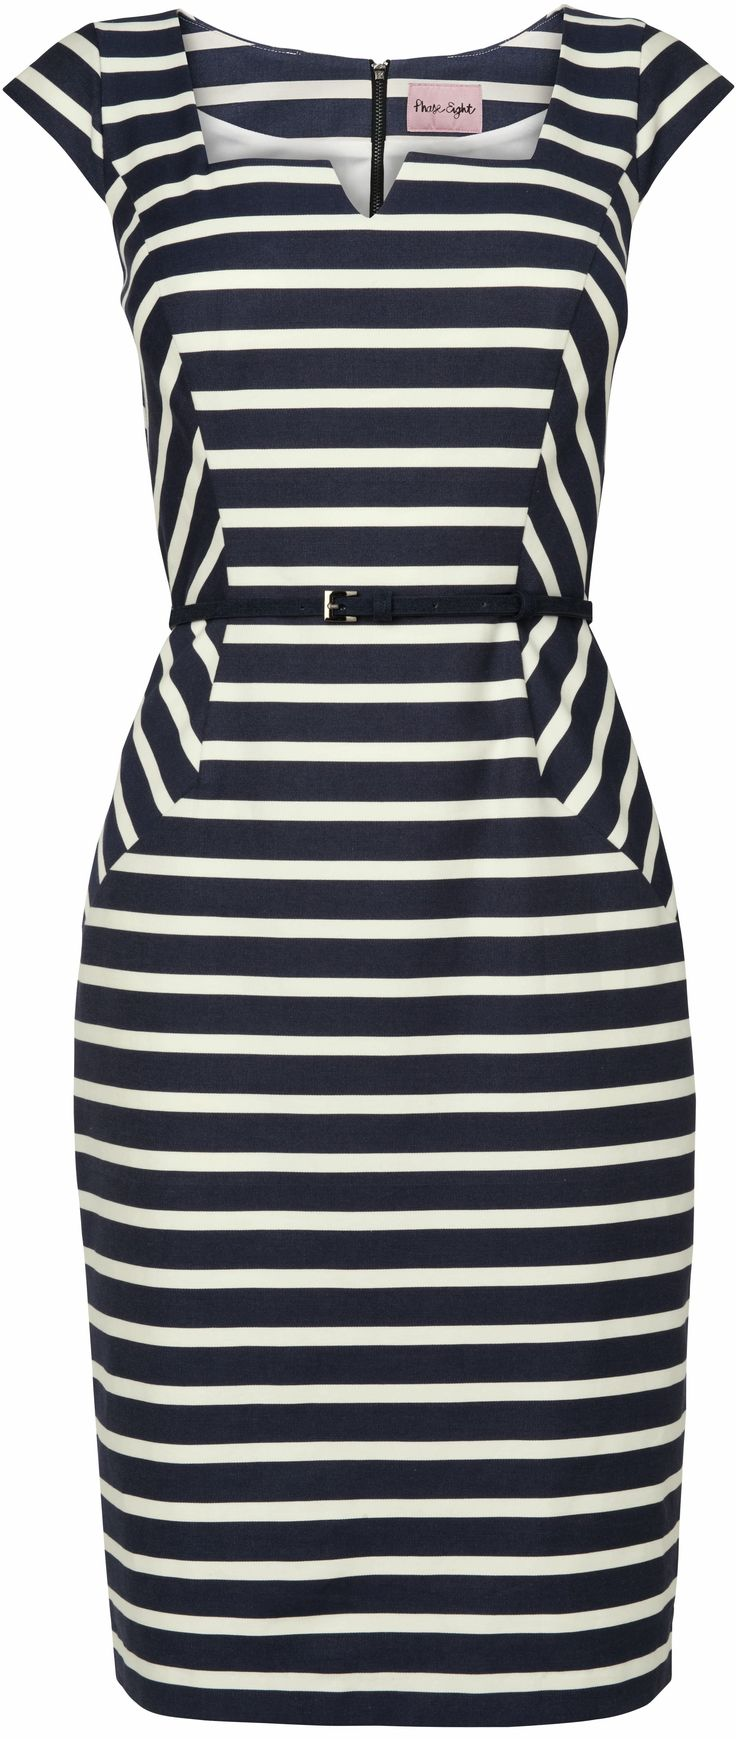 Cute striped dress - optical illusion - http://www.boomerinas.com/2013/02/12/cruise-clothing-nautical-stripes-sailor-style/